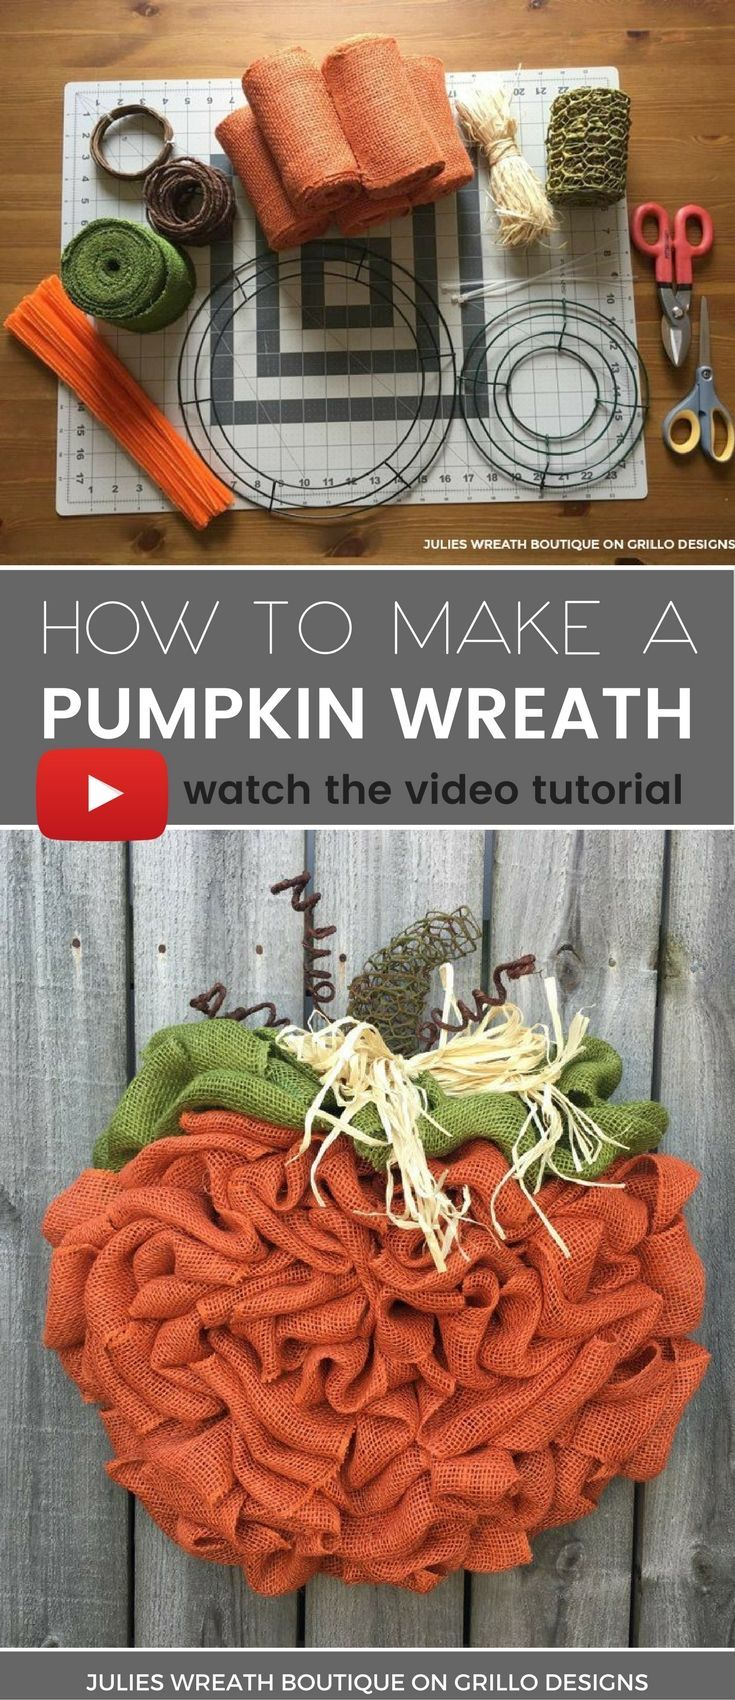 Pumpkin Wreath Tutorial Burlap pumpkins, Wreaths, Burlap